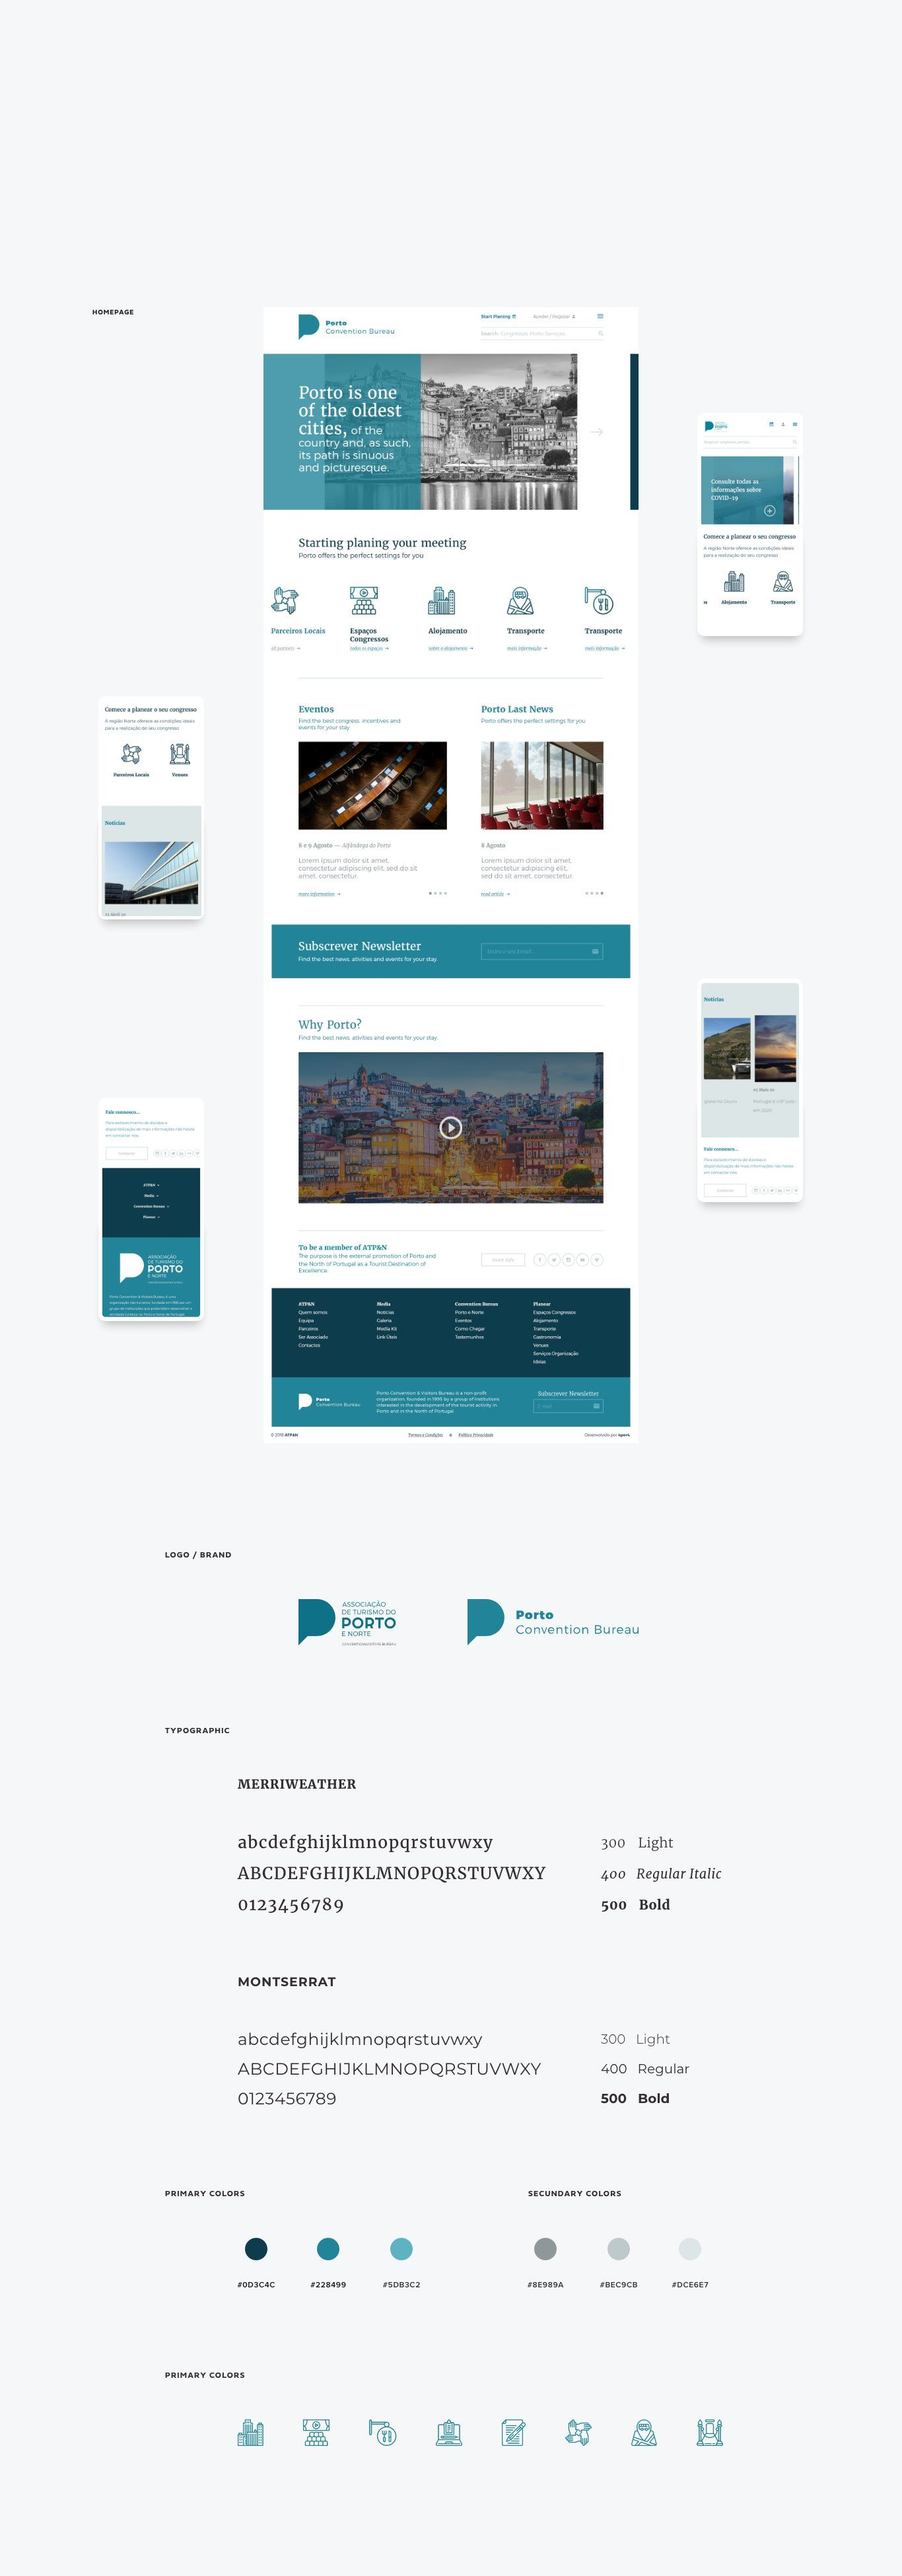 layouts for porto tourism website